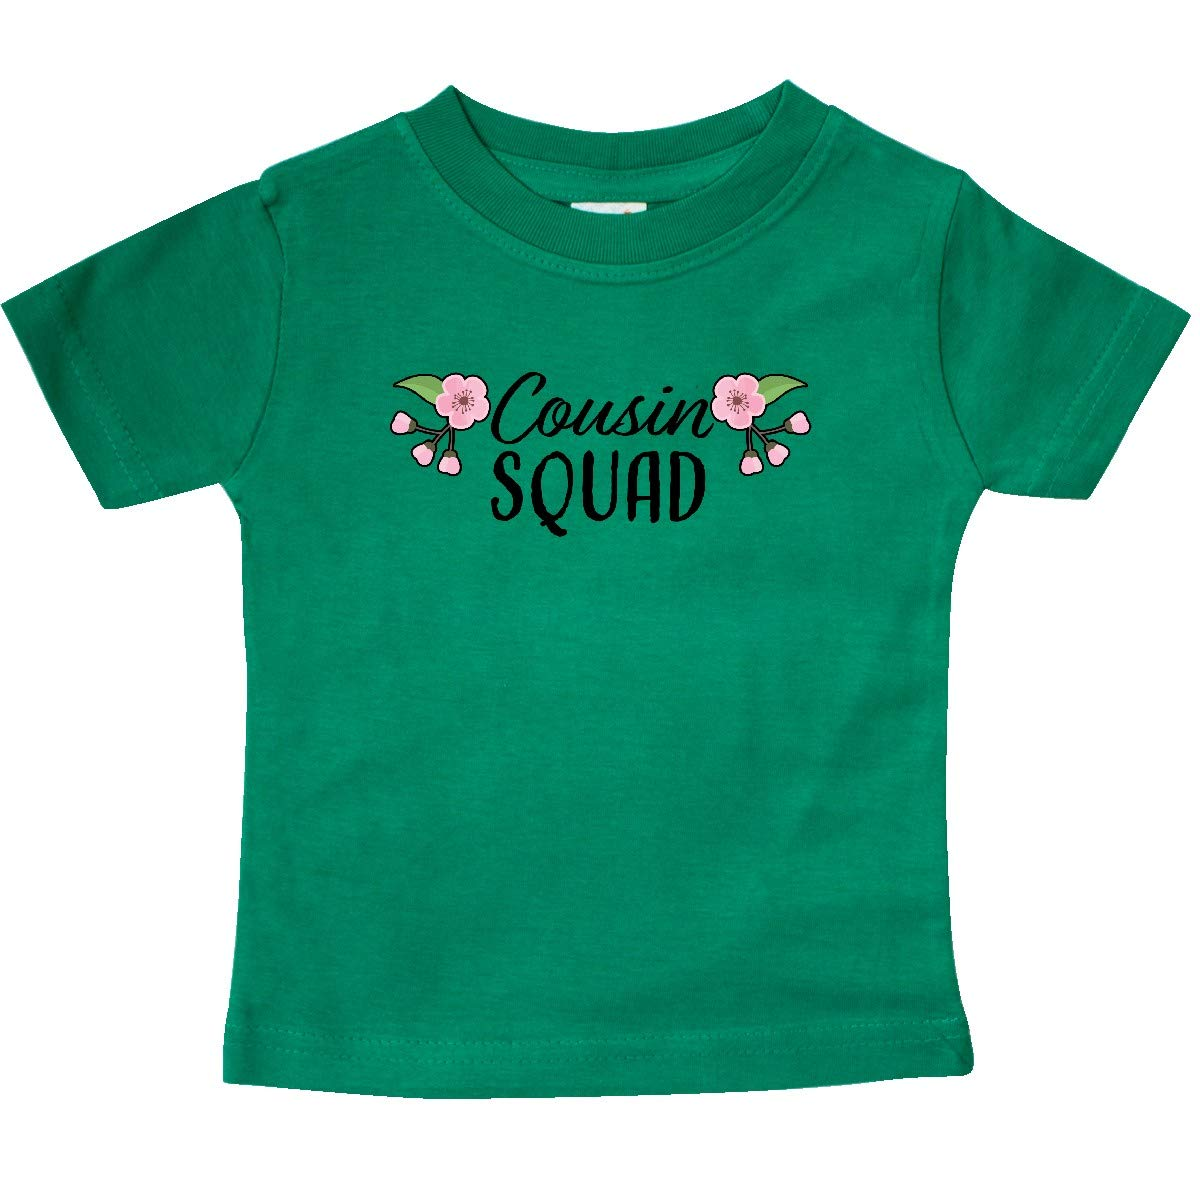 inktastic Cousin Squad with Cherry Blossom Flowers Toddler T-Shirt